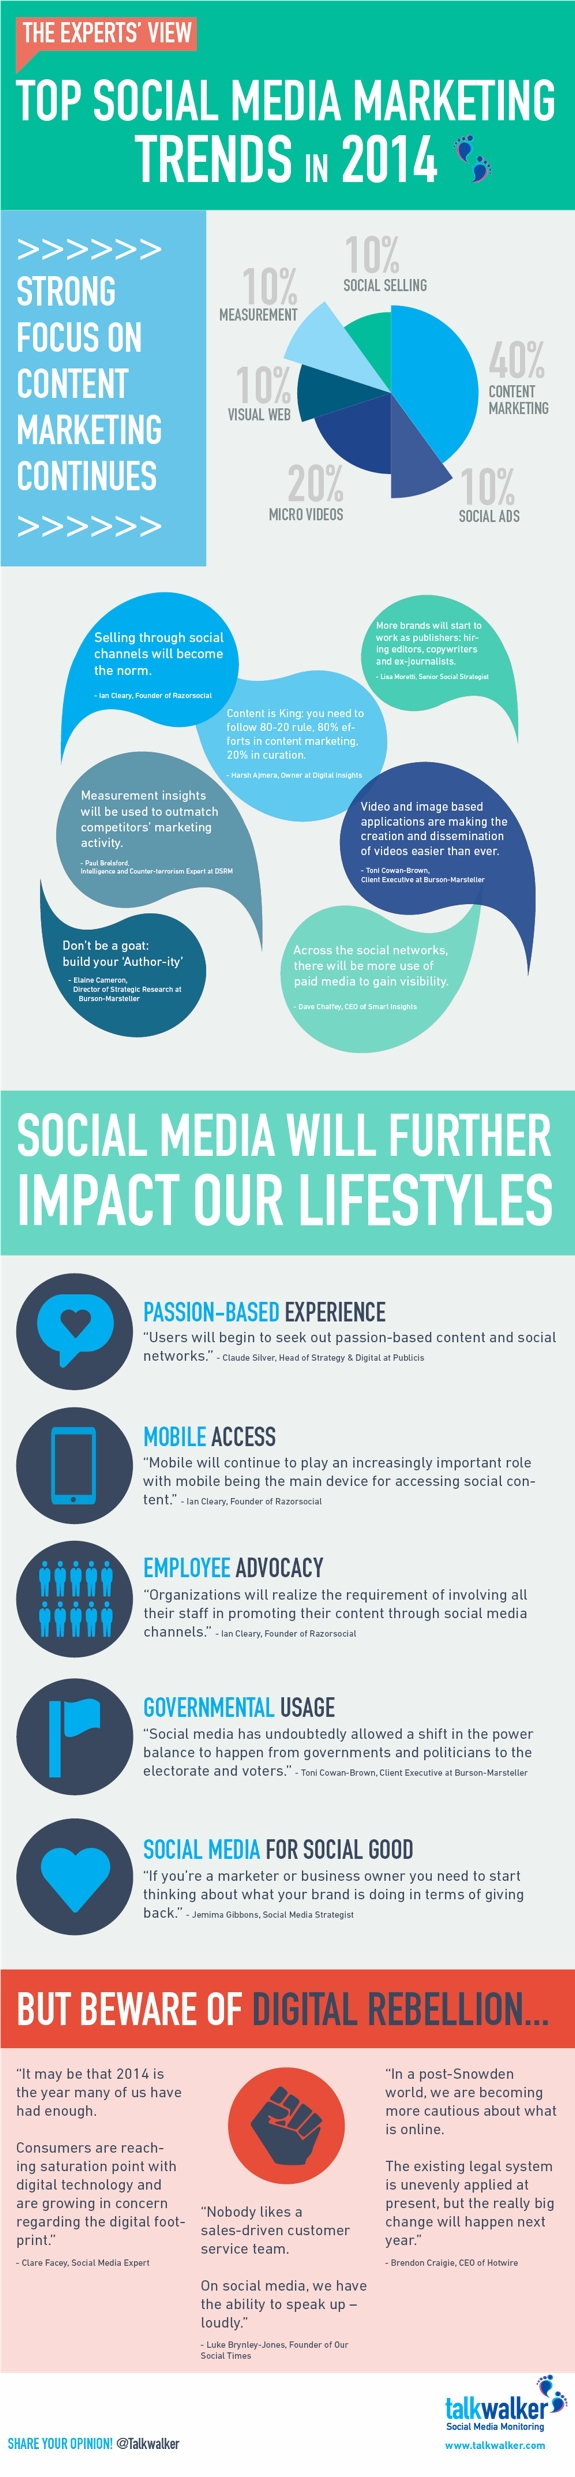 twitter web community infographics web community  Infographic: Top Social Media Marketing Trends in 2014